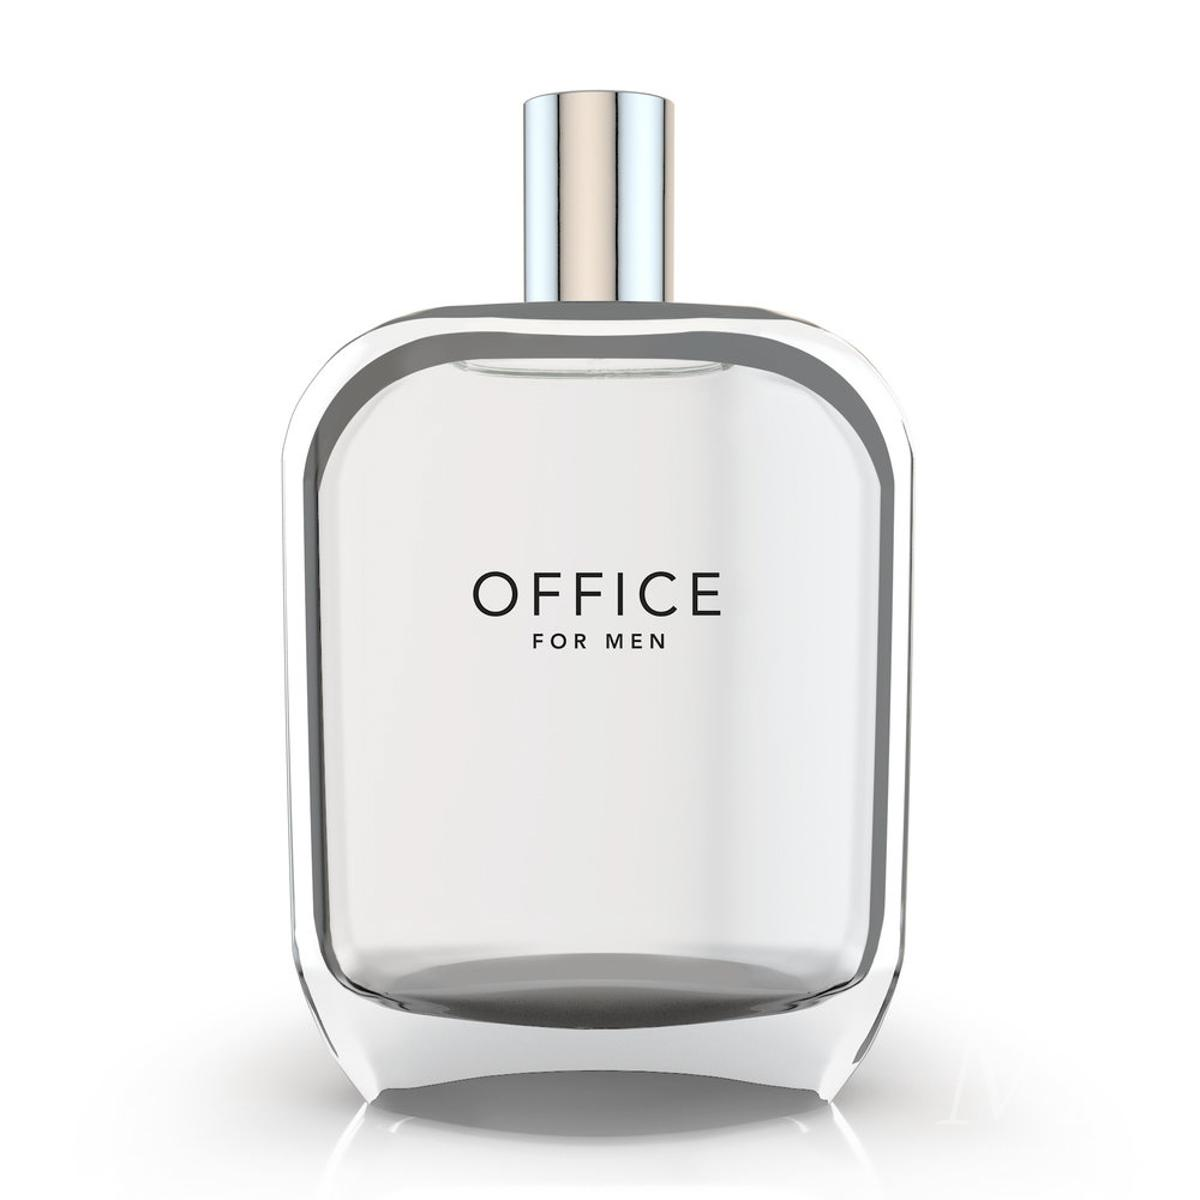 jeremy-fragrance-fragrances-man-for-himself